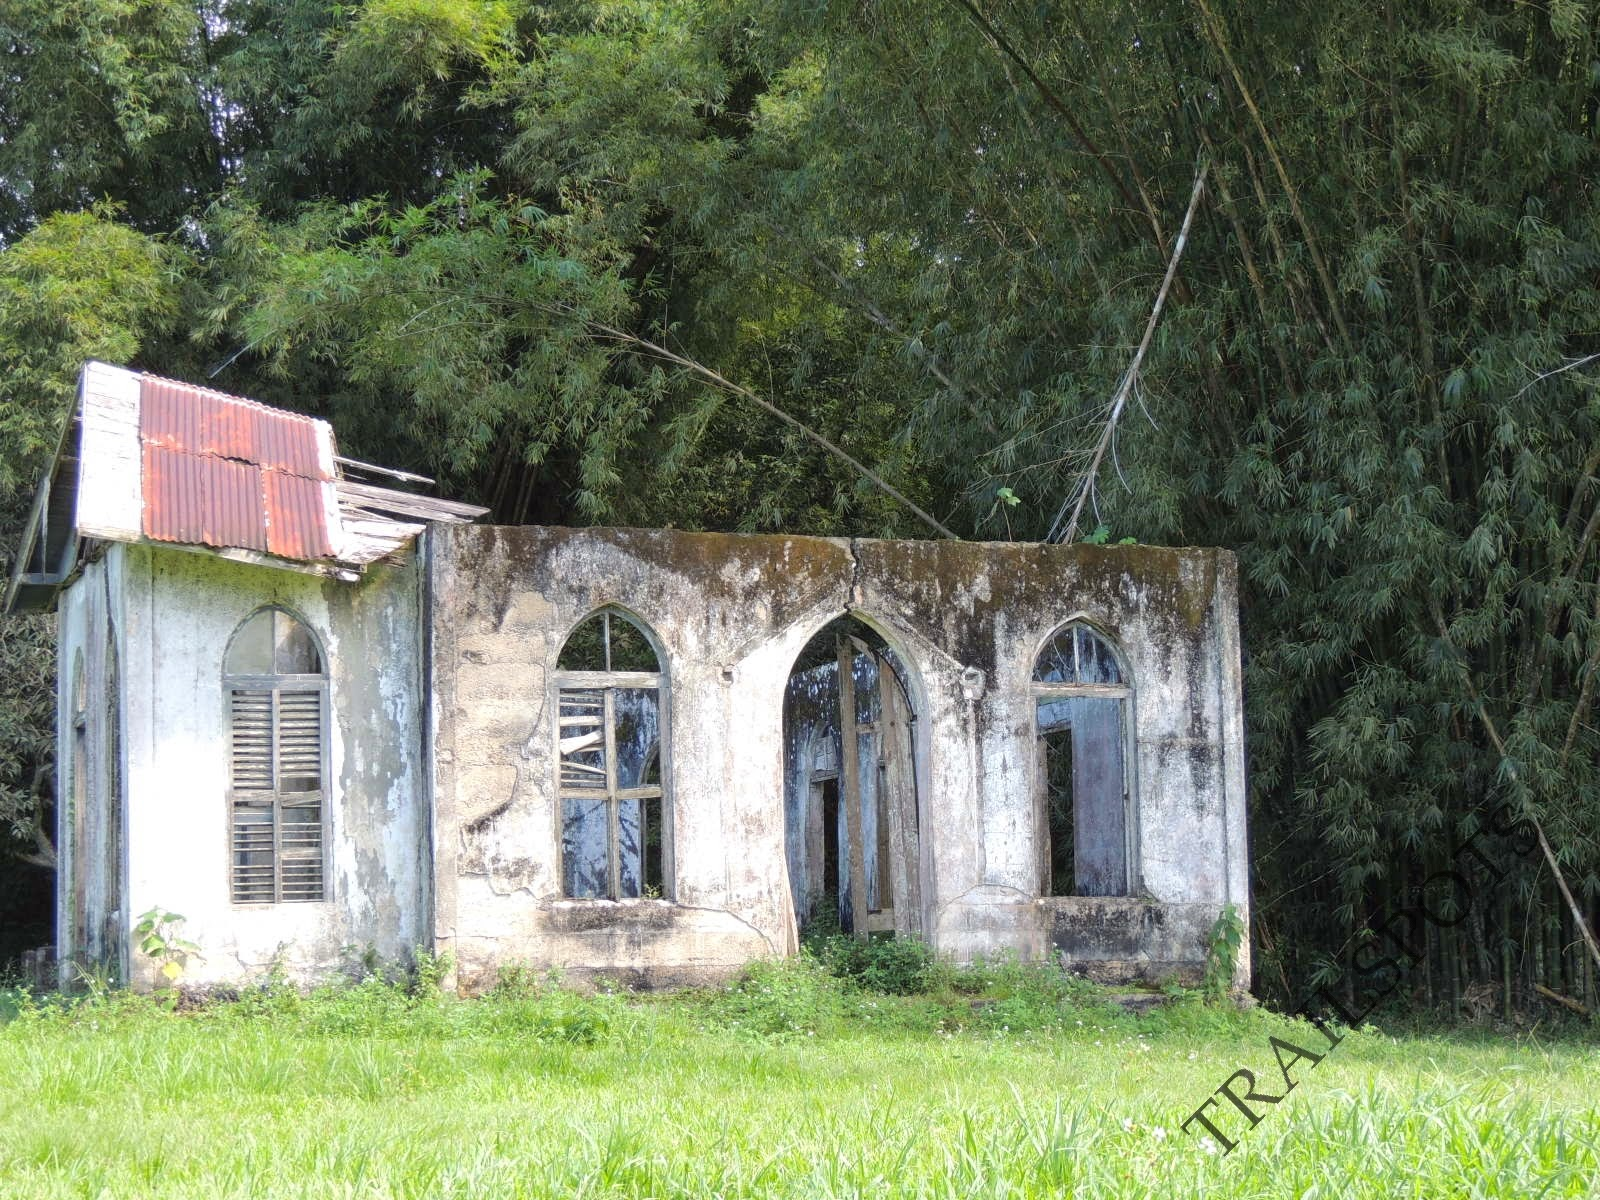 ST. CHAD'S ANGLICAN CHURCH, CHAGUARAMAS